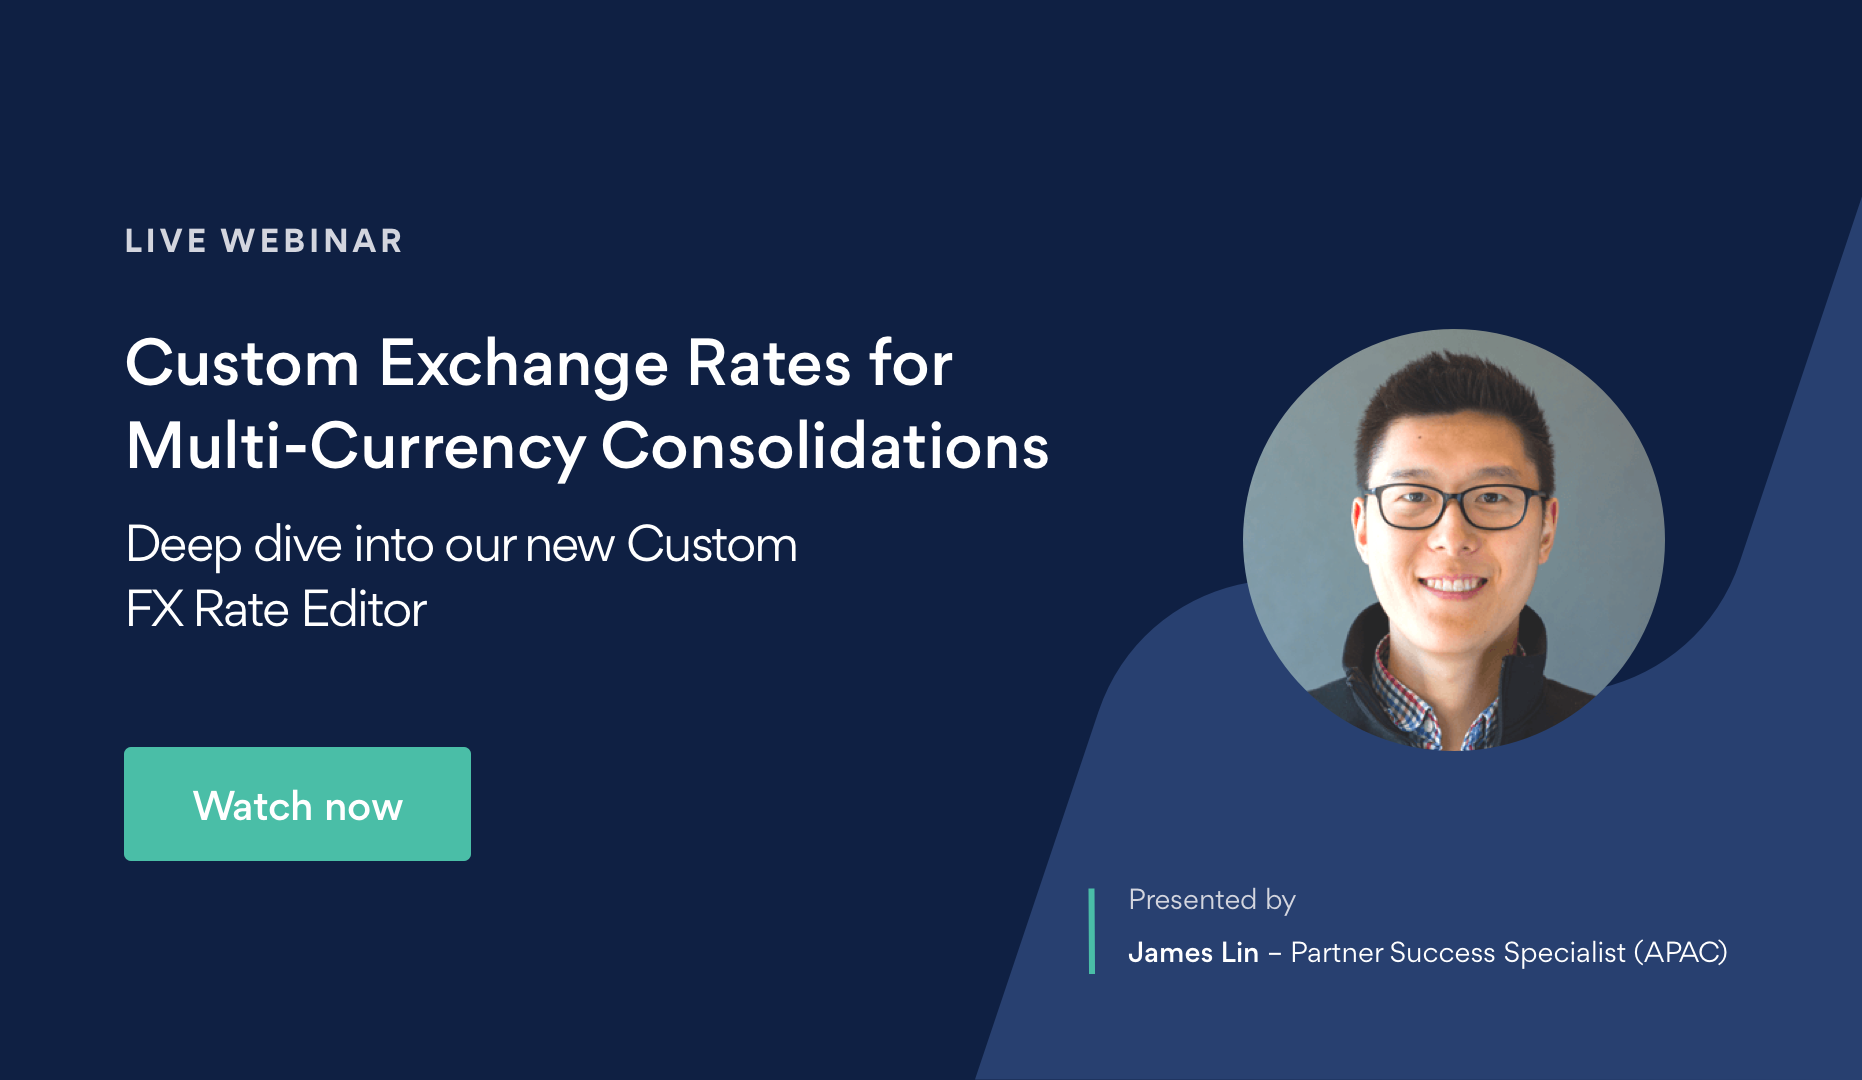 Deep Dive Into Our New Custom Fx Rate